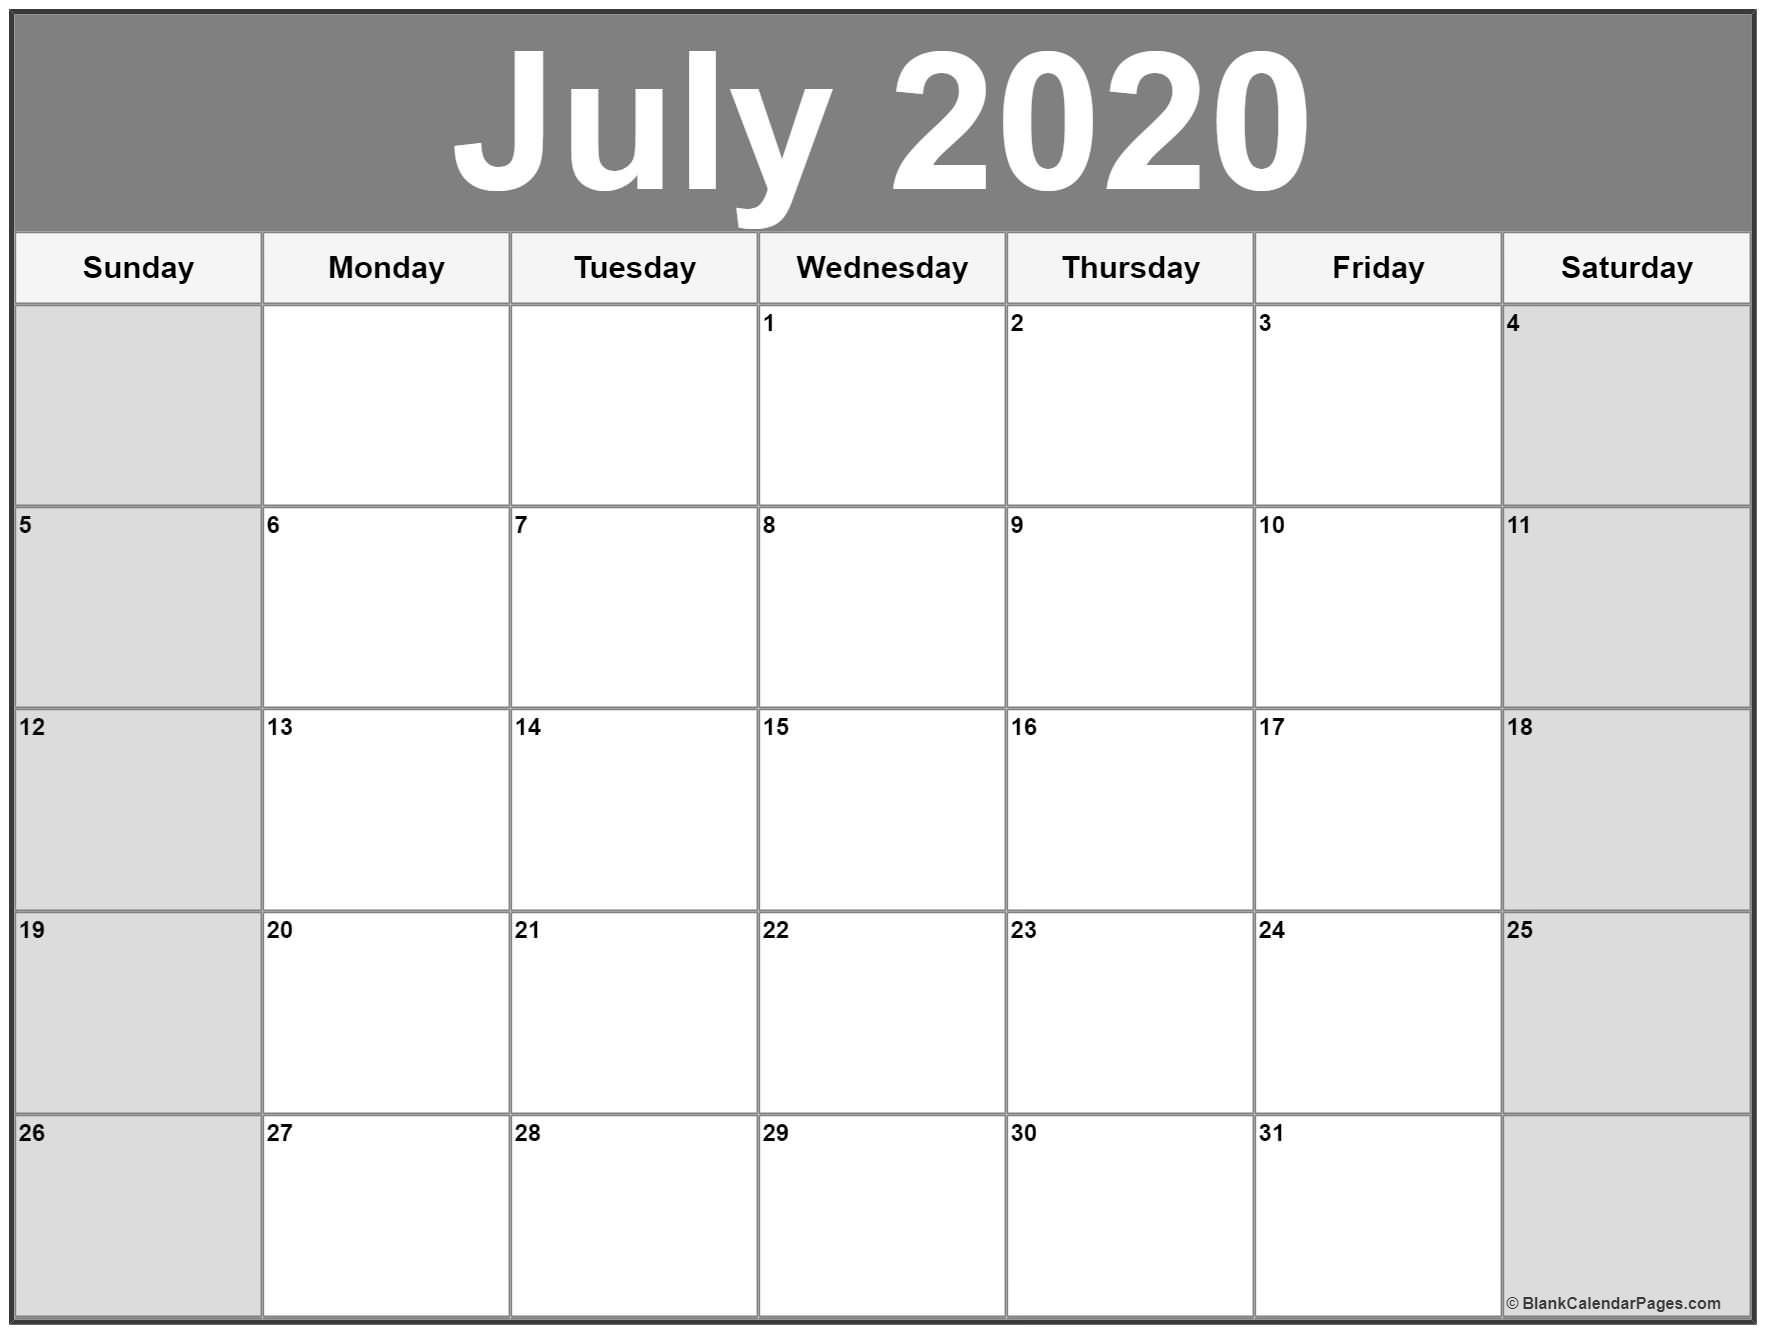 July 2020 Printable Calendar Template #2020Calendars-Disney Printable Calendar 2020 Monthly